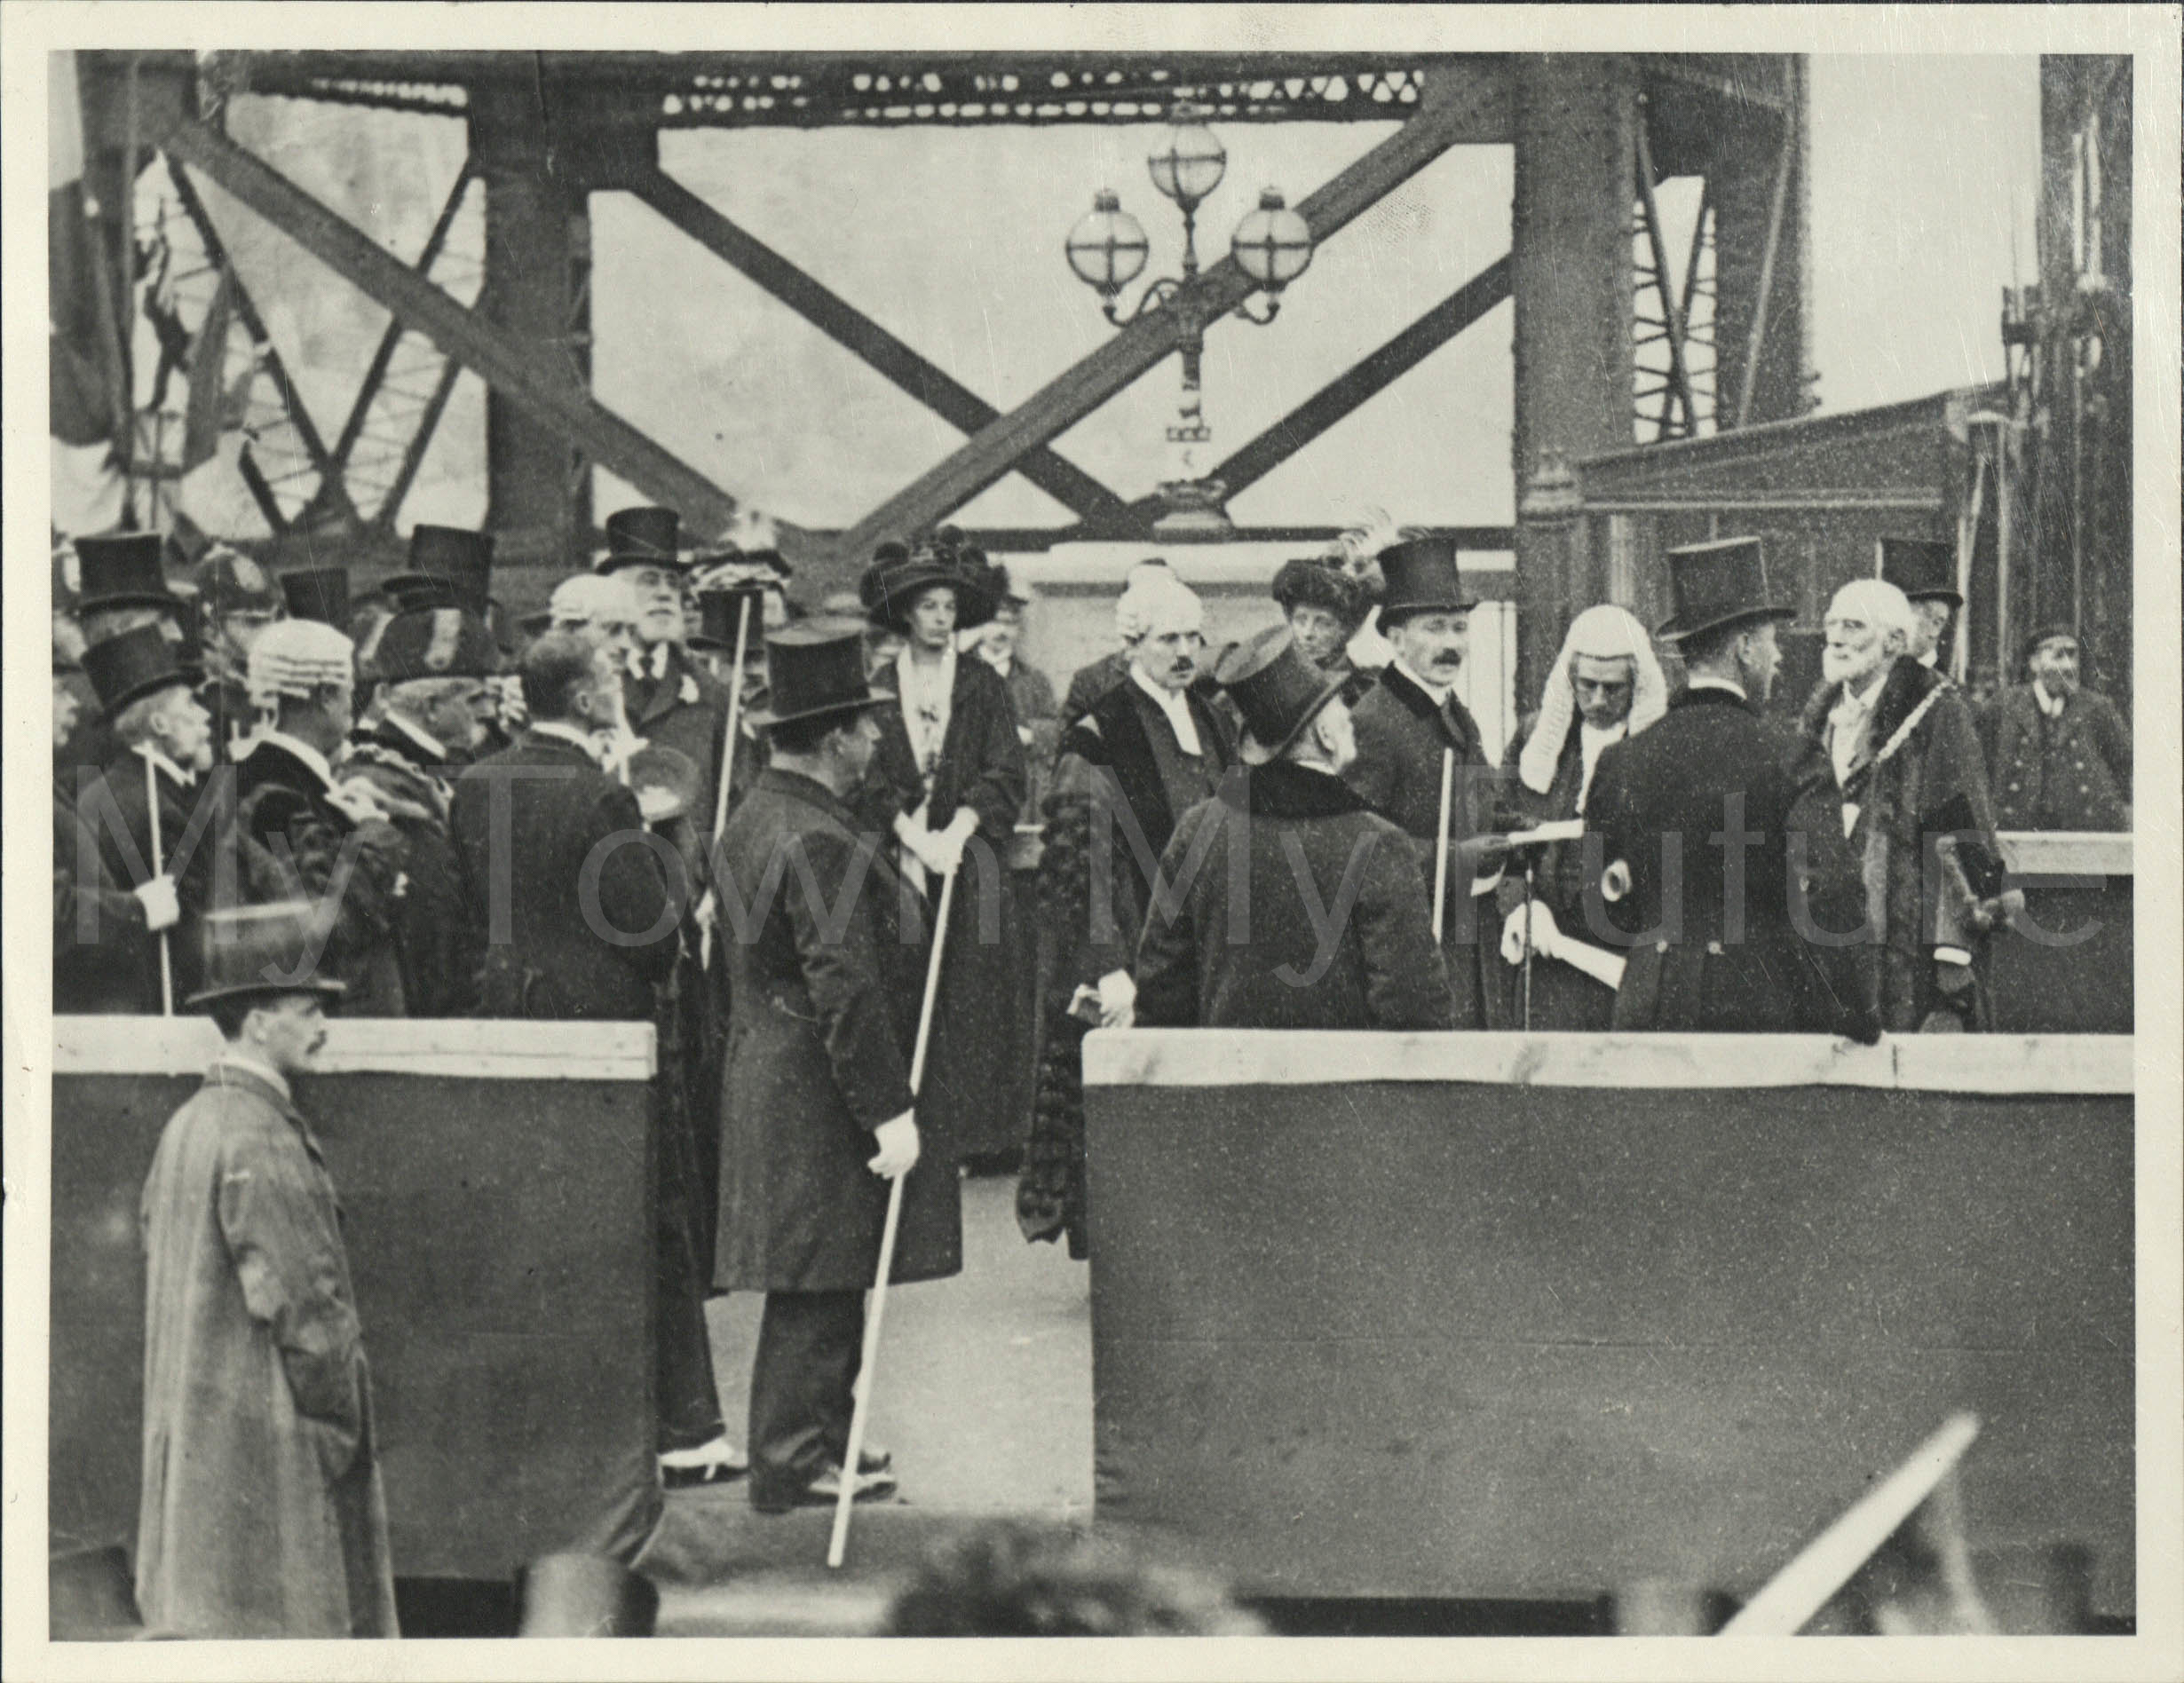 Transporter Bridge Opening Ceremony 1911 Dennis Wompra